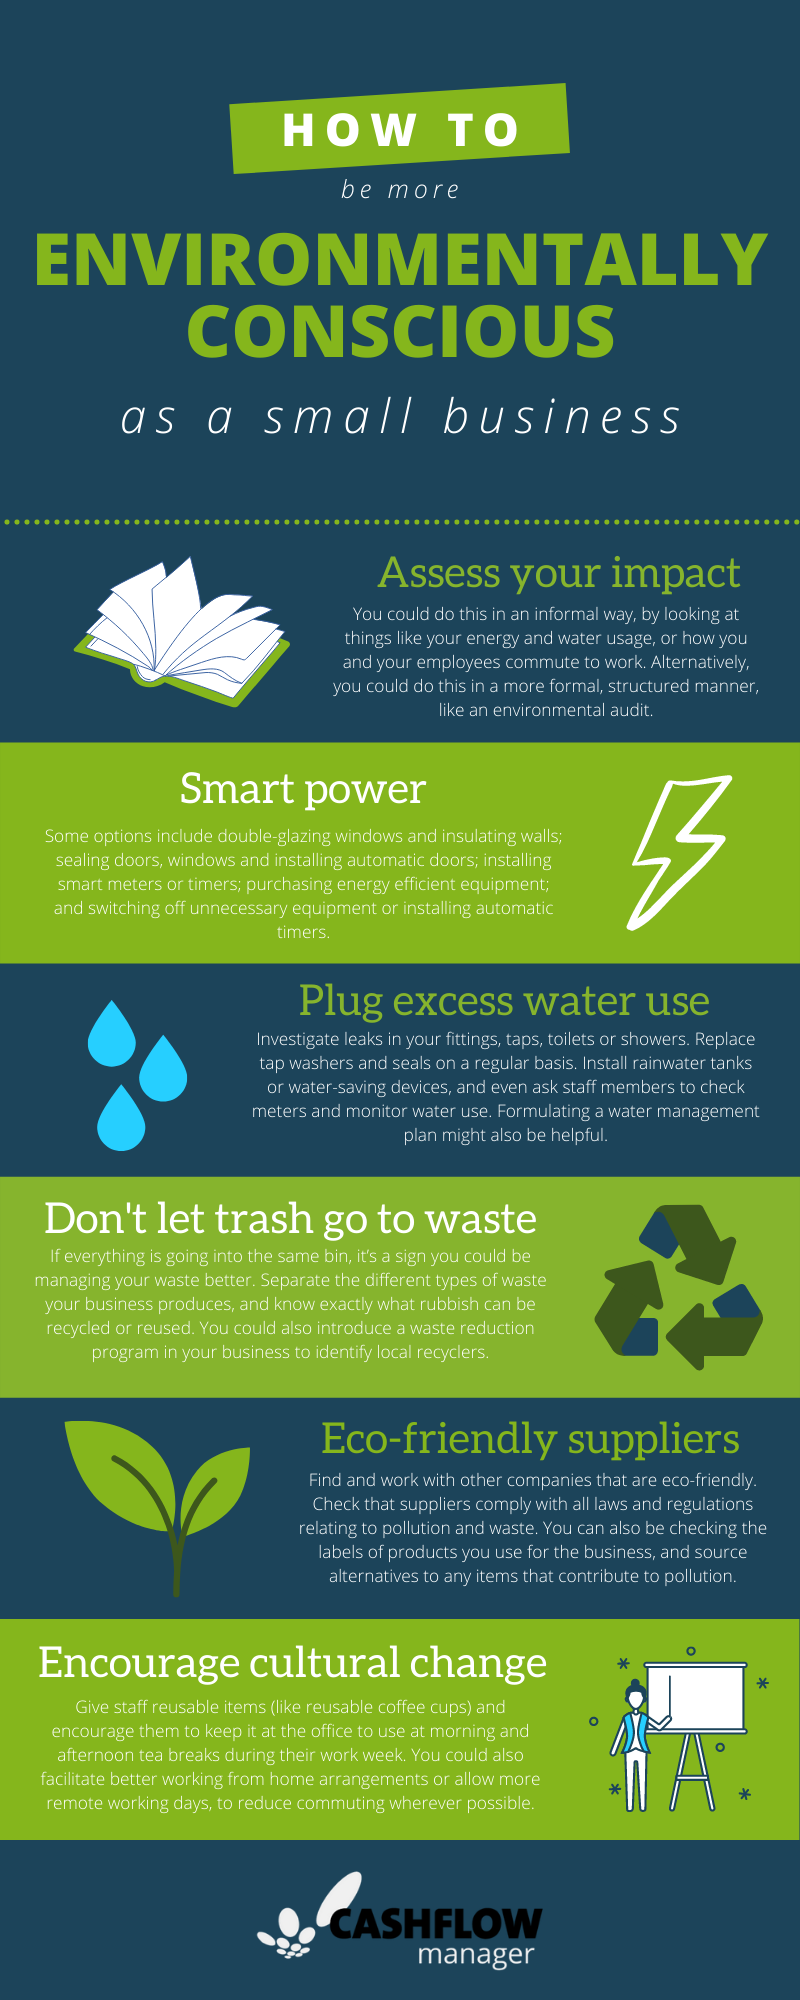 An infographic detailing ways small businesses could be more environmentally friendly. Assess your impact, be smarter with your power use, plug excess water use, don't let trash go to waste, eco-friendly suppliers and cultural change.